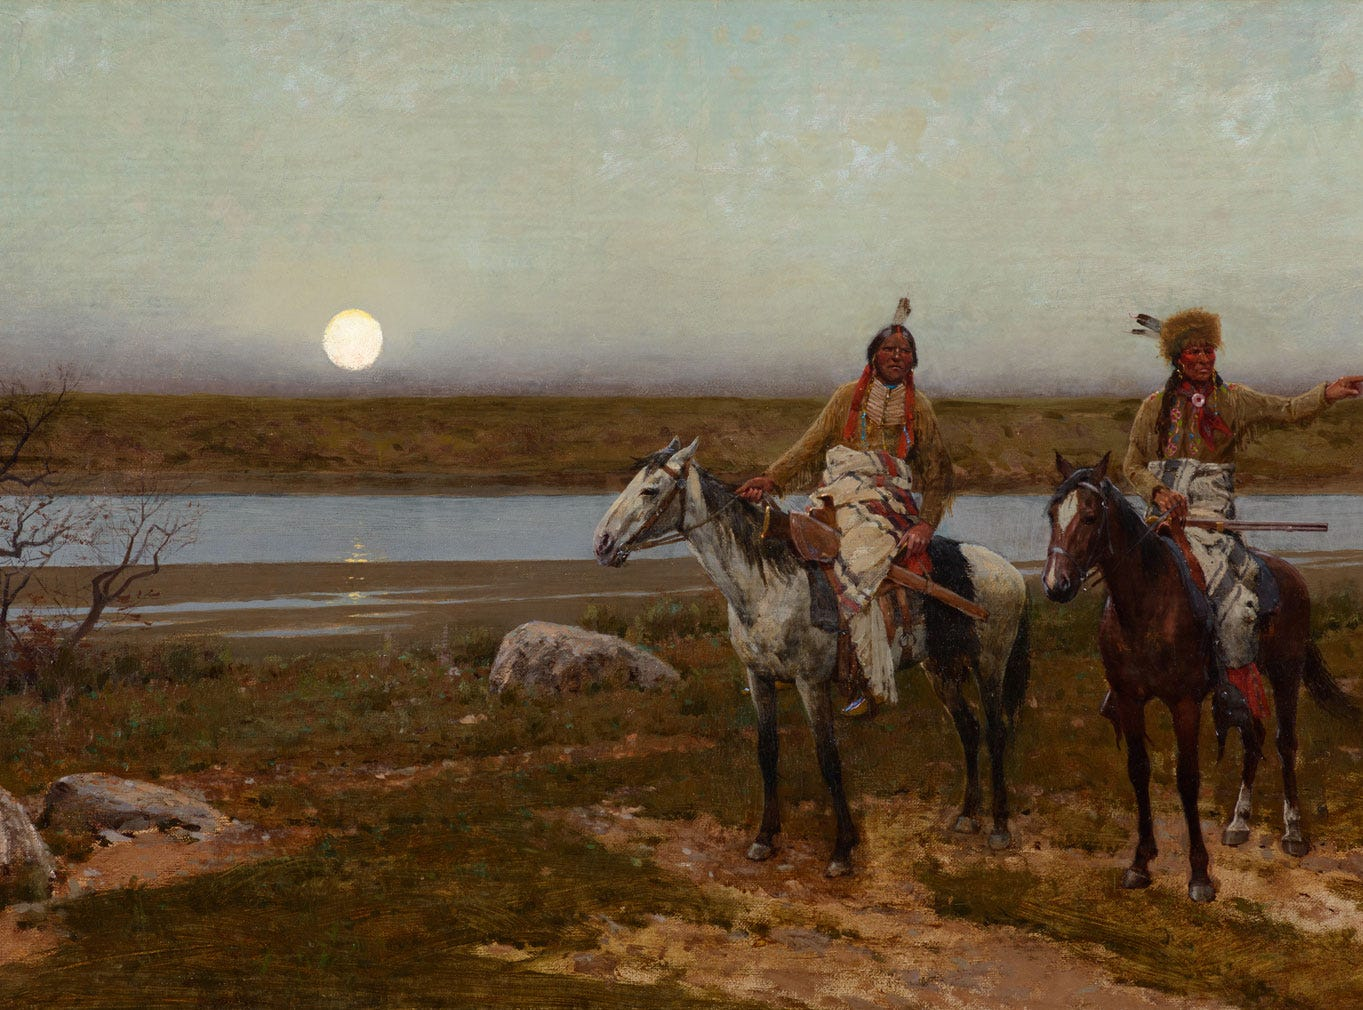 """Pastures New,"" 1901 by Henry Farny, valued at up to $600,000, to be auctioned July 28, 2018 as part of the Coeur d'Alene Art Auction in Reno."